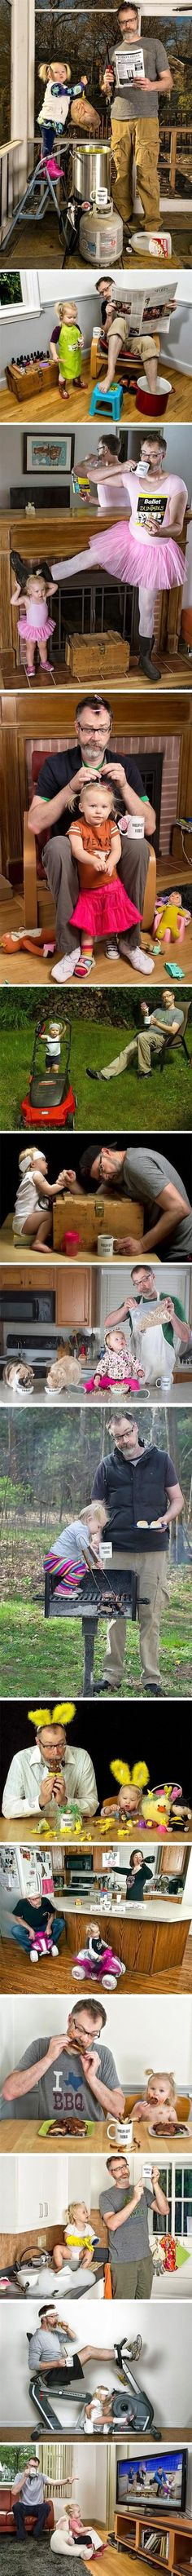 Daddy daughter pics...hilarious!